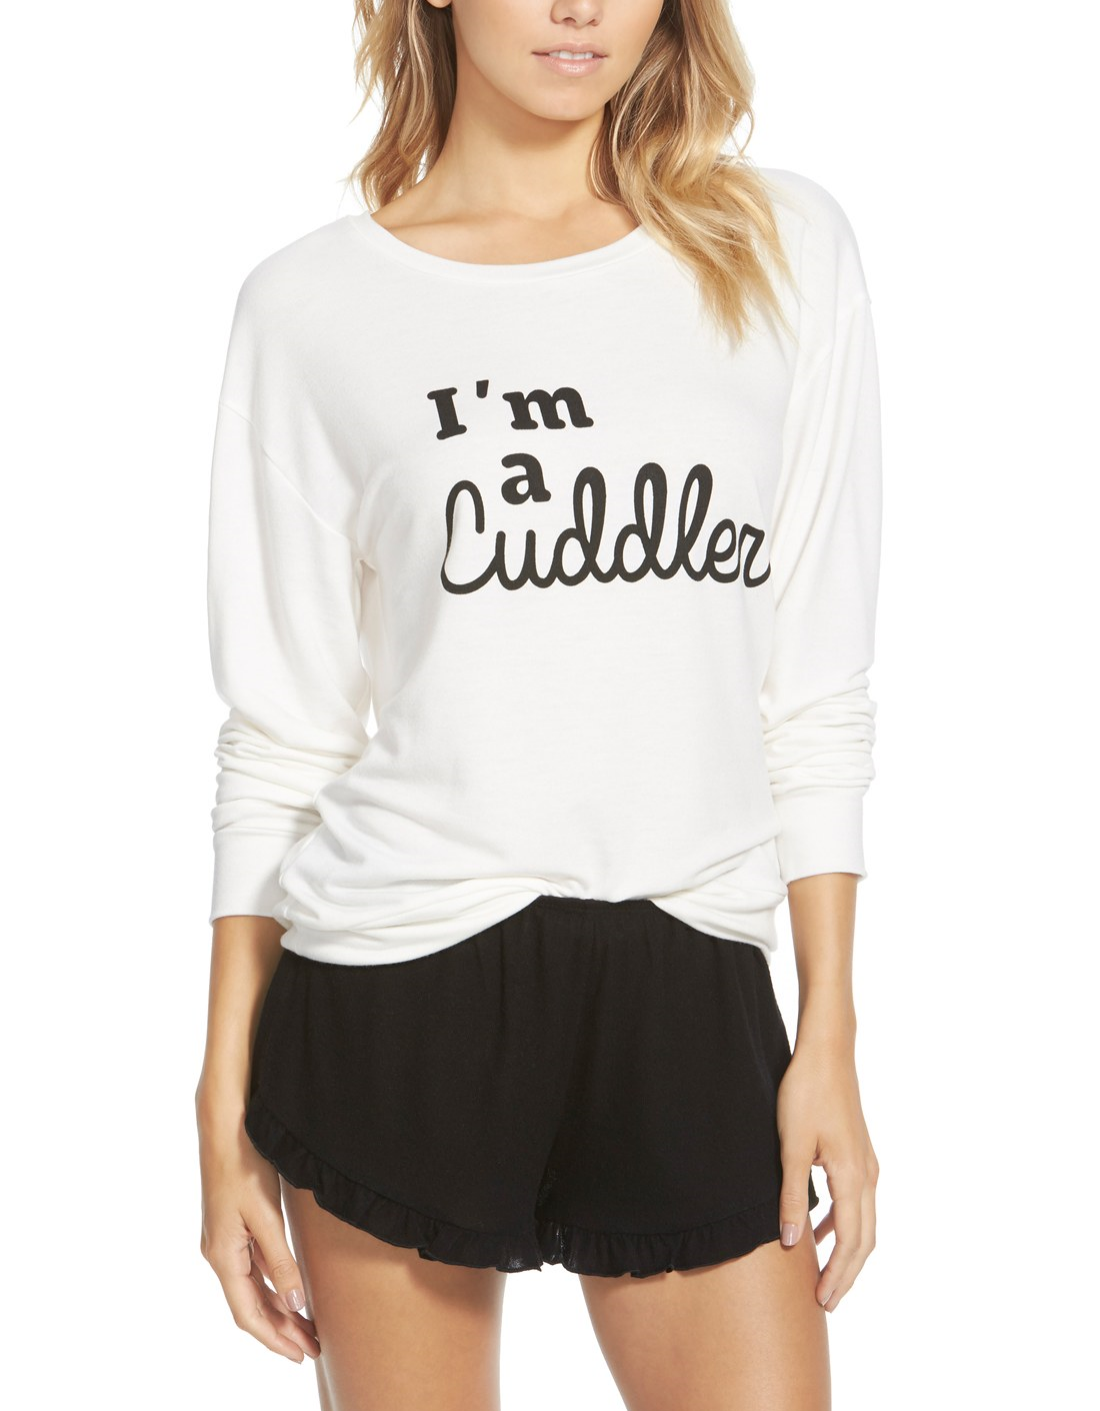 74bd2a59a09 Crushing on this cozy long-sleeved tee for lounging around the house ...